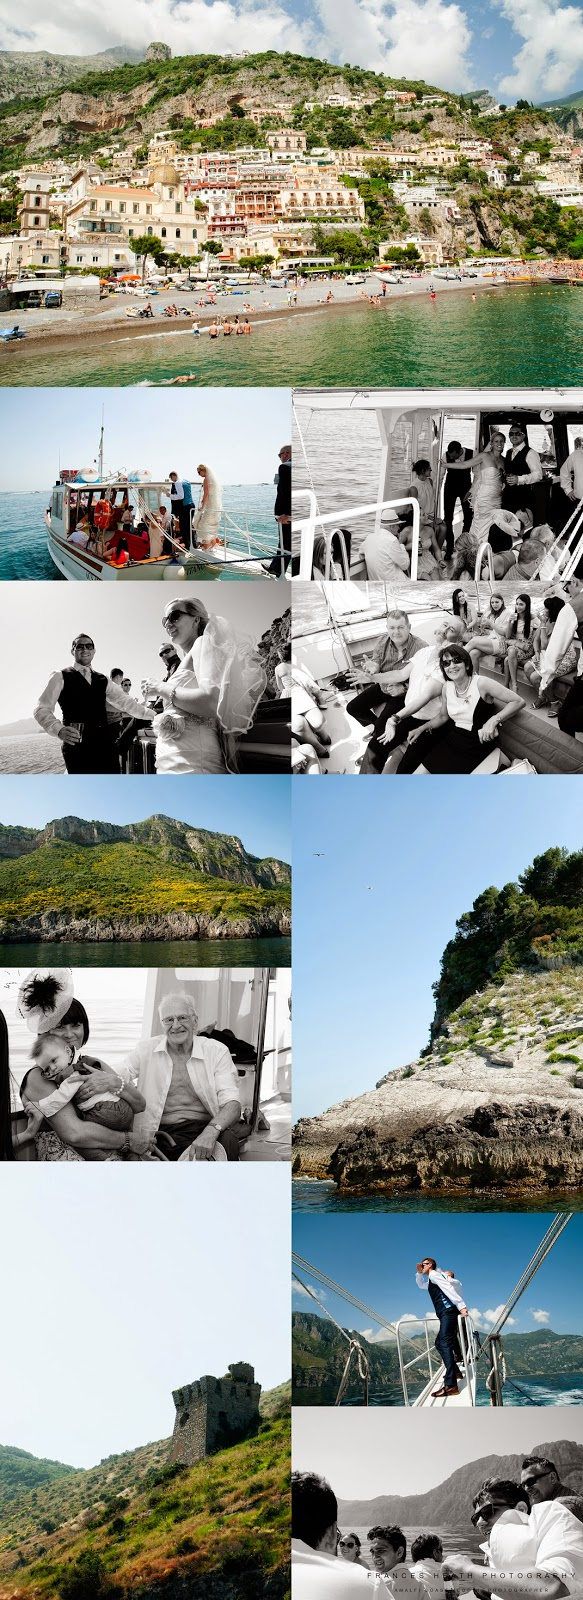 Wedding boat tour from Positano to Nerano